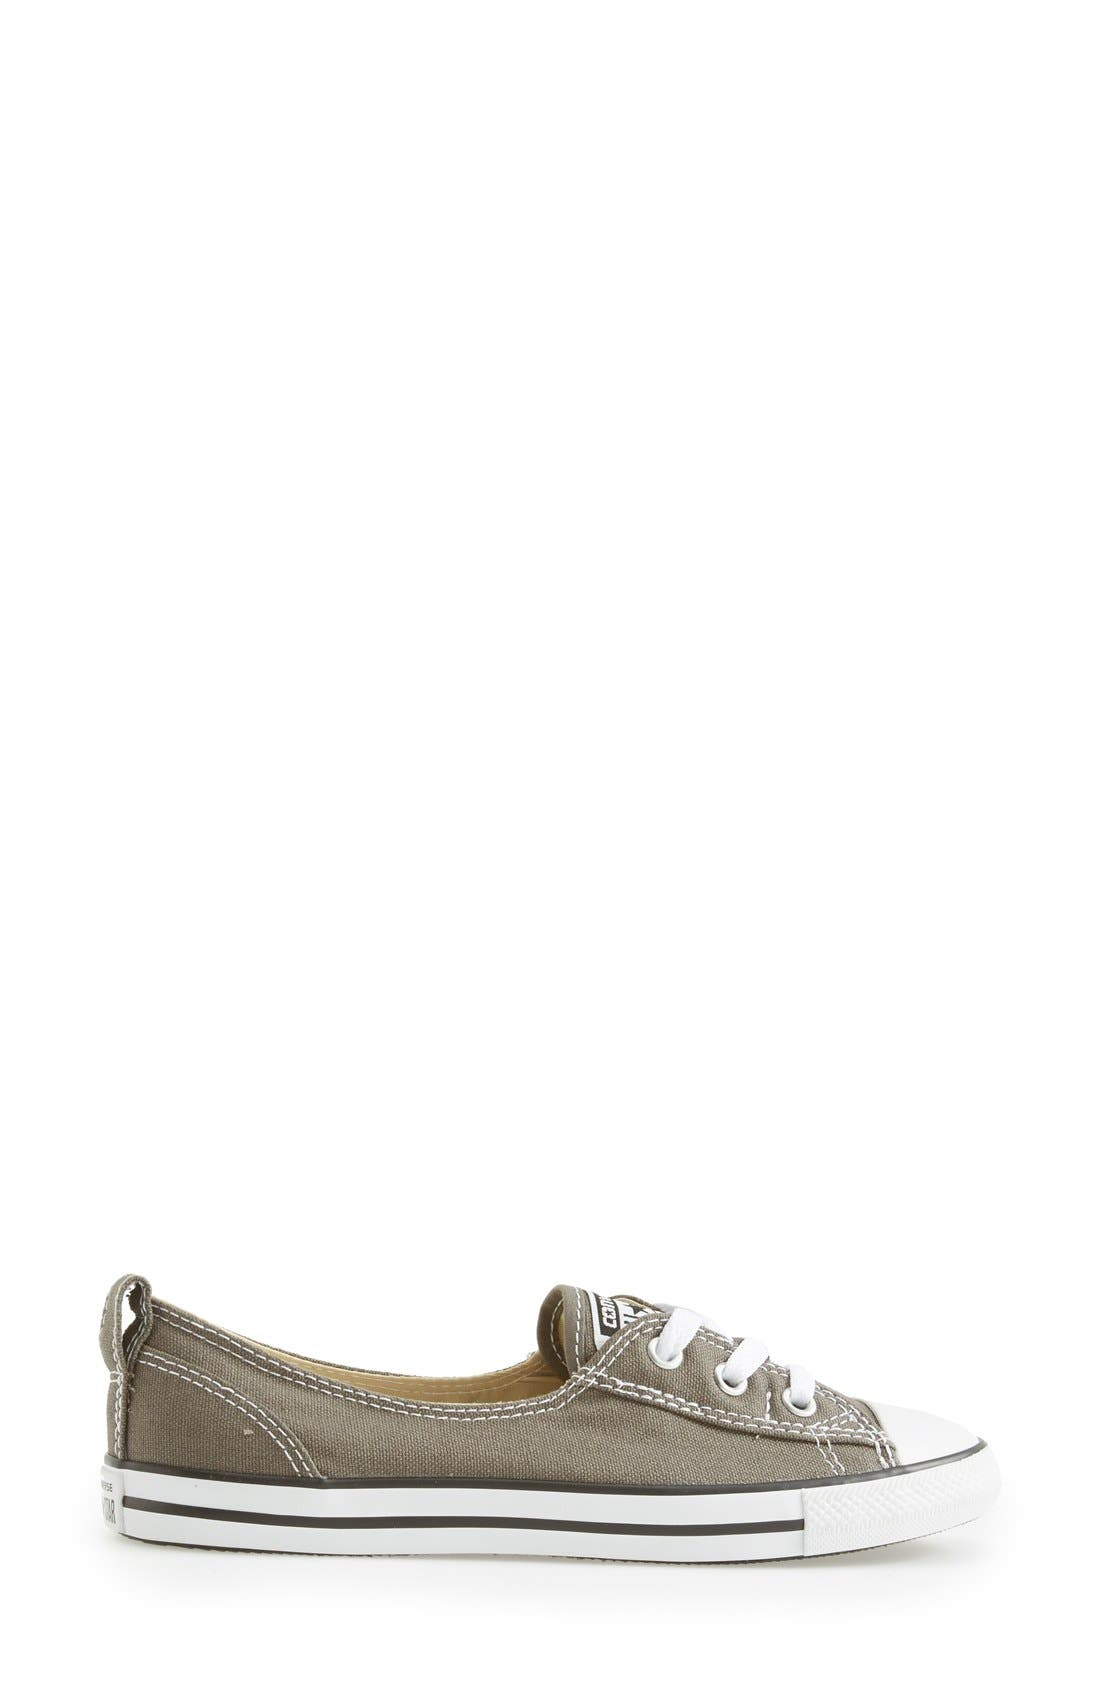 ,                             Chuck Taylor<sup>®</sup> All Star<sup>®</sup> Ballet Canvas Sneaker,                             Alternate thumbnail 15, color,                             020